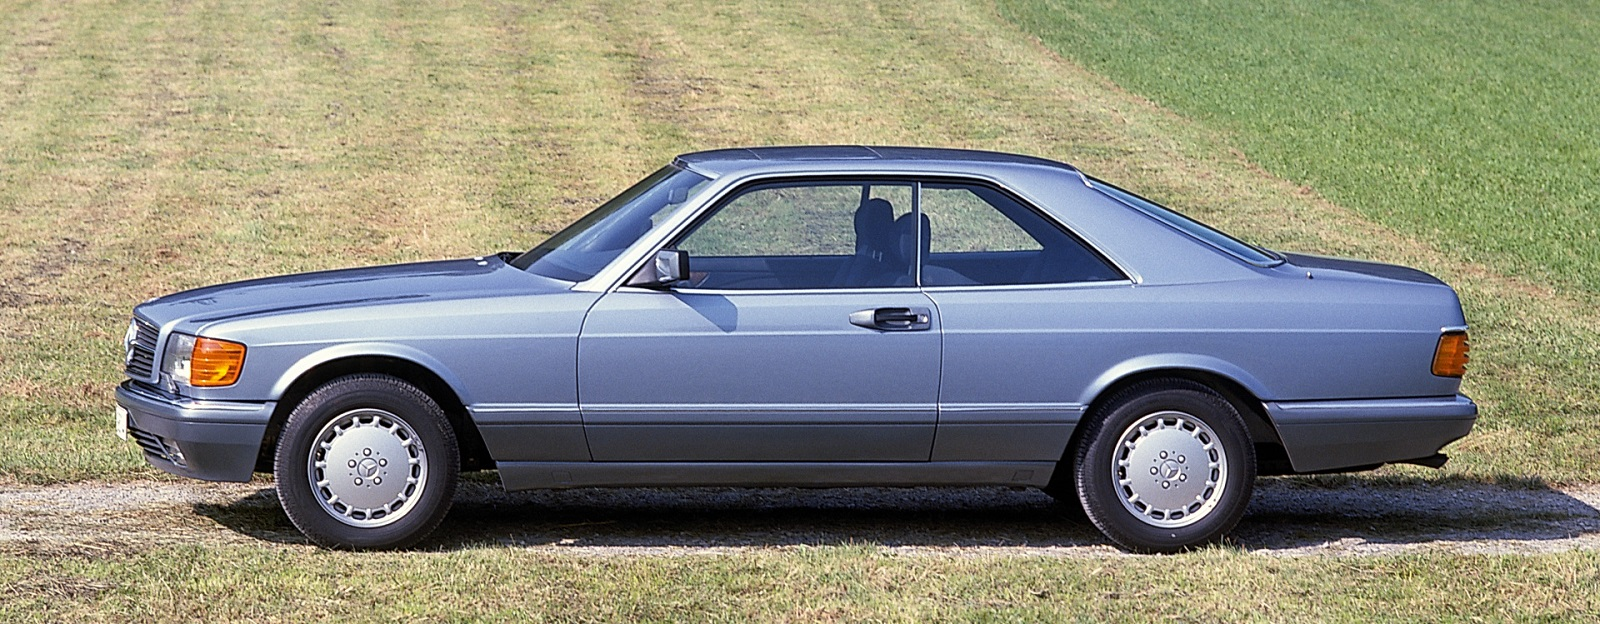 Mercedes-Benz to resurrect SEC nameplate to be used on ...